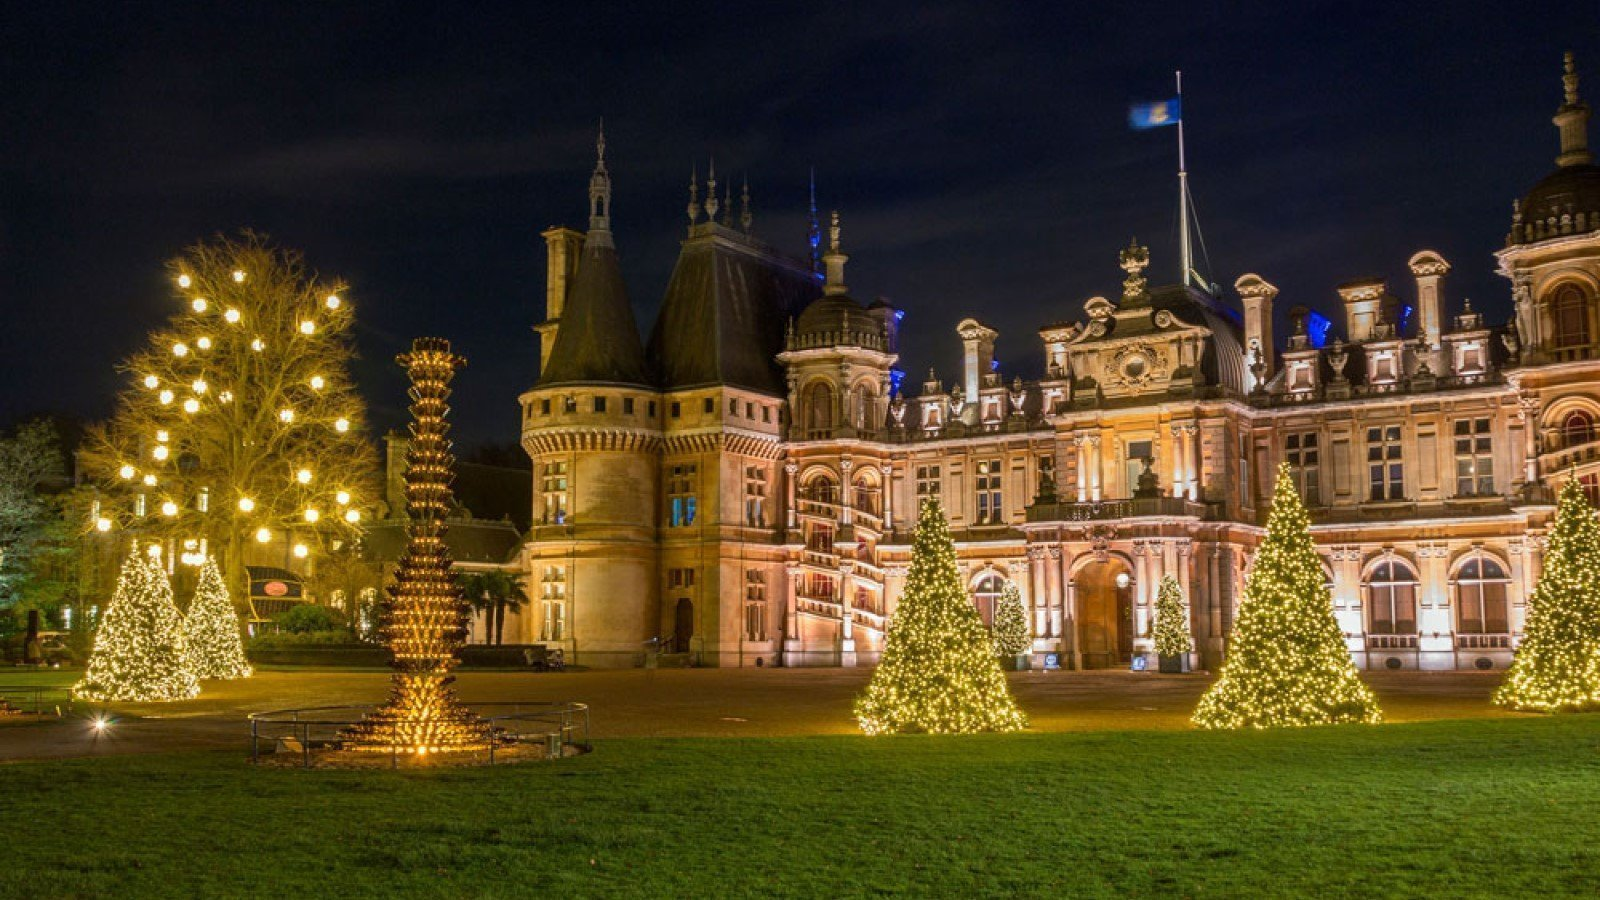 Christmas 2019 at Waddesdon Manor